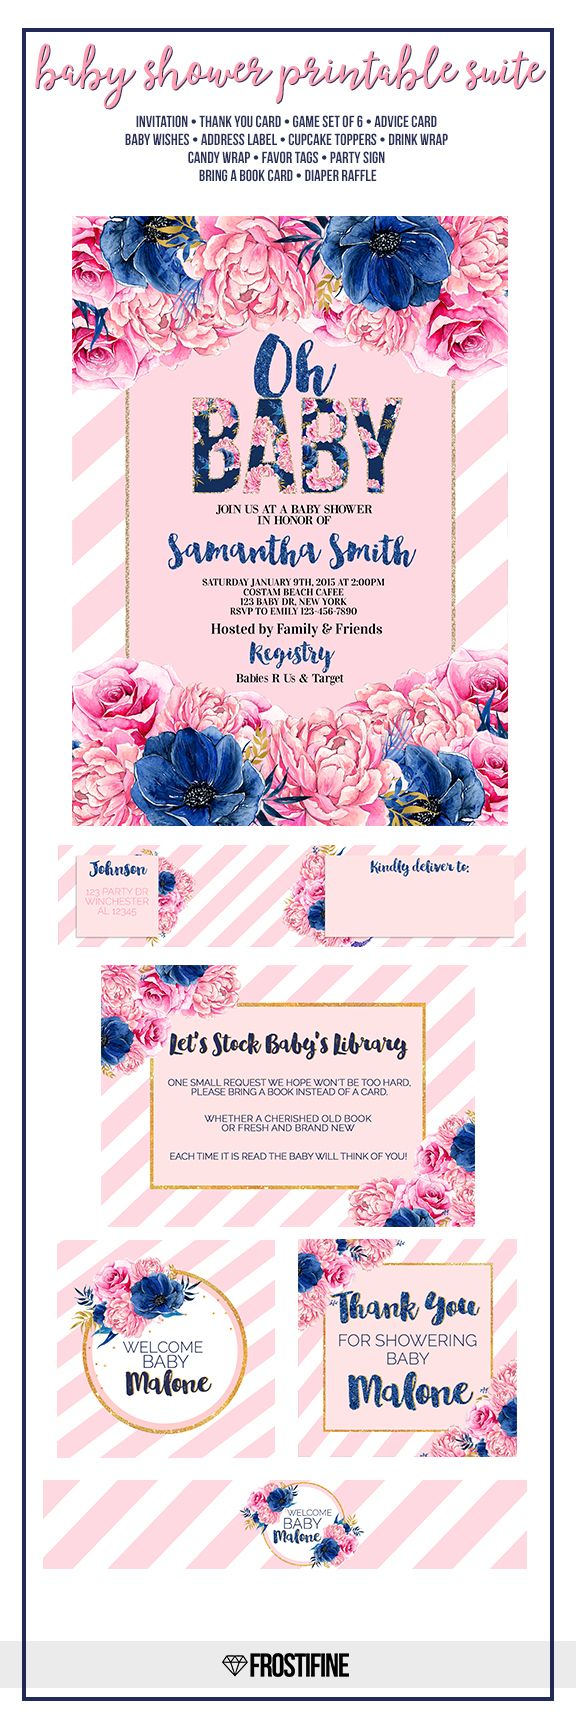 Navy blue and blush pink floral baby shower invitation with matching party decor…